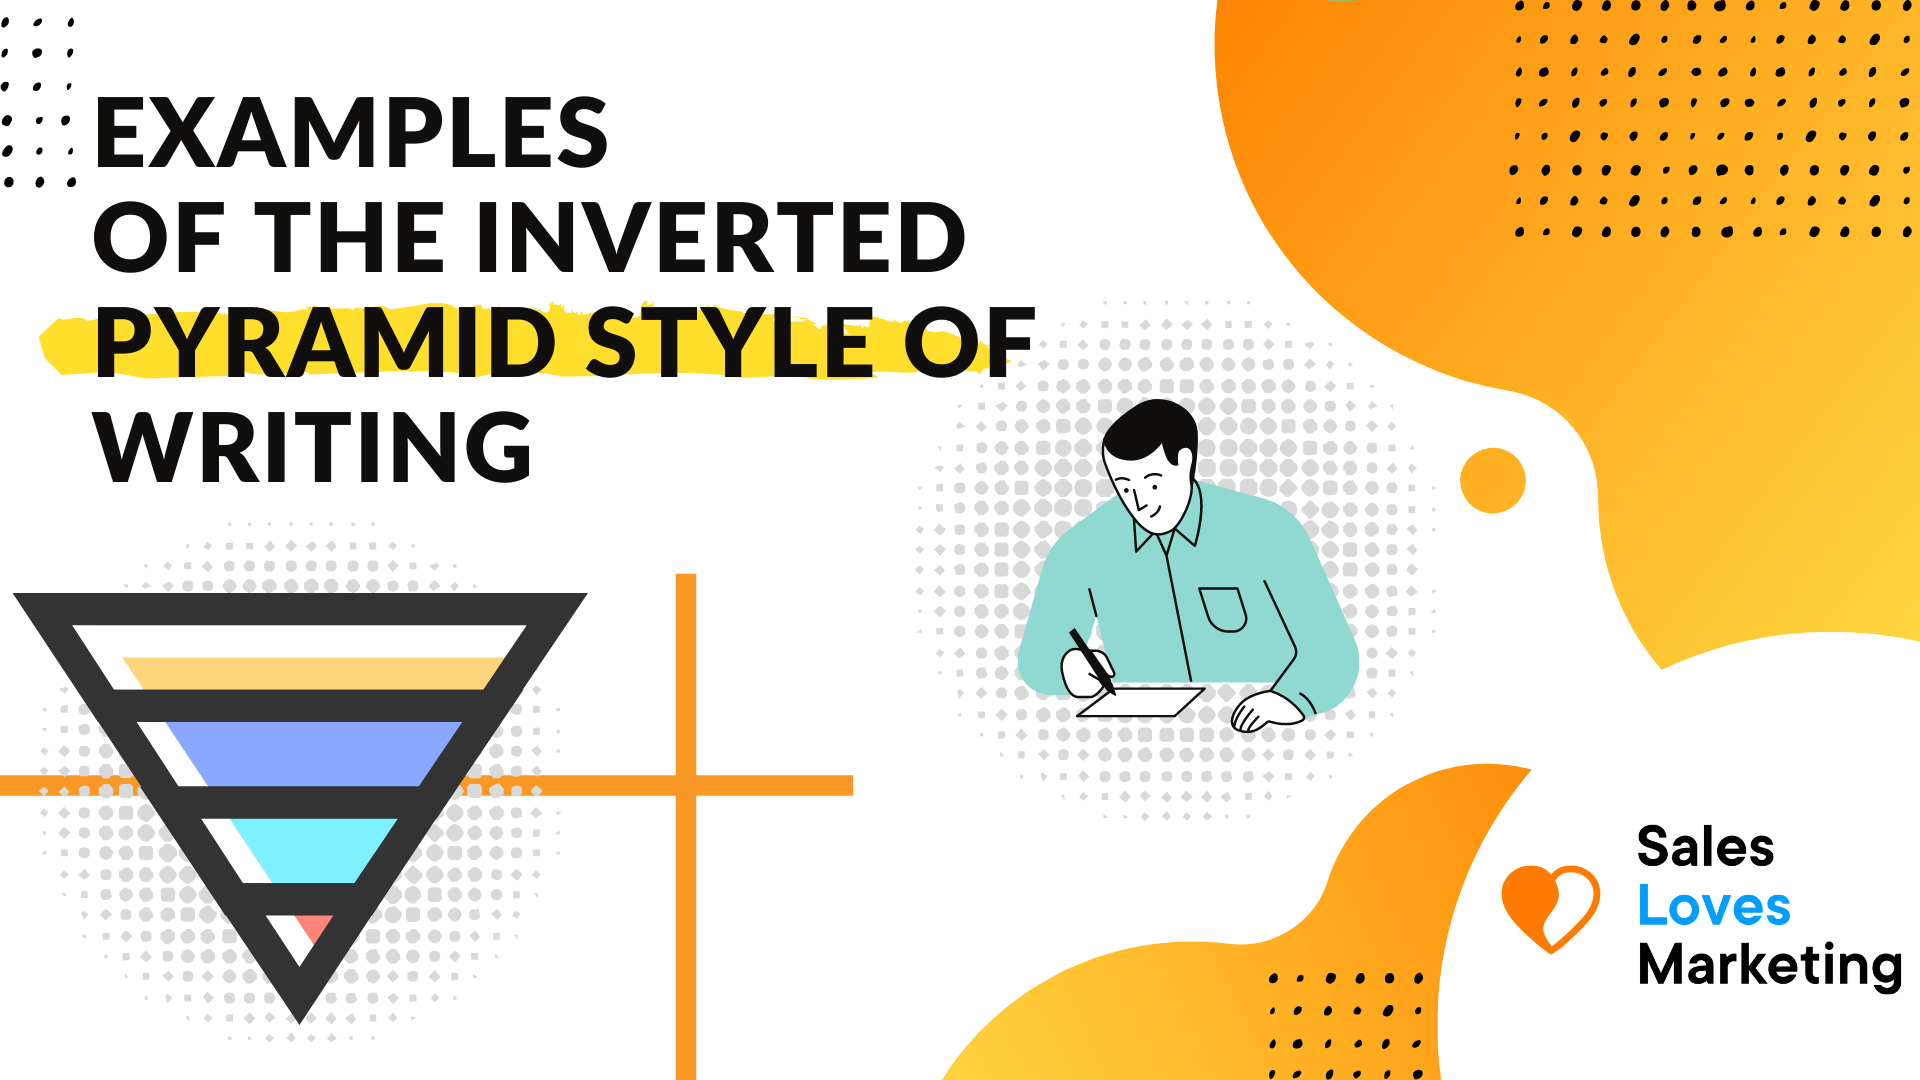 Examples of the Inverted Pyramid Style of Writing